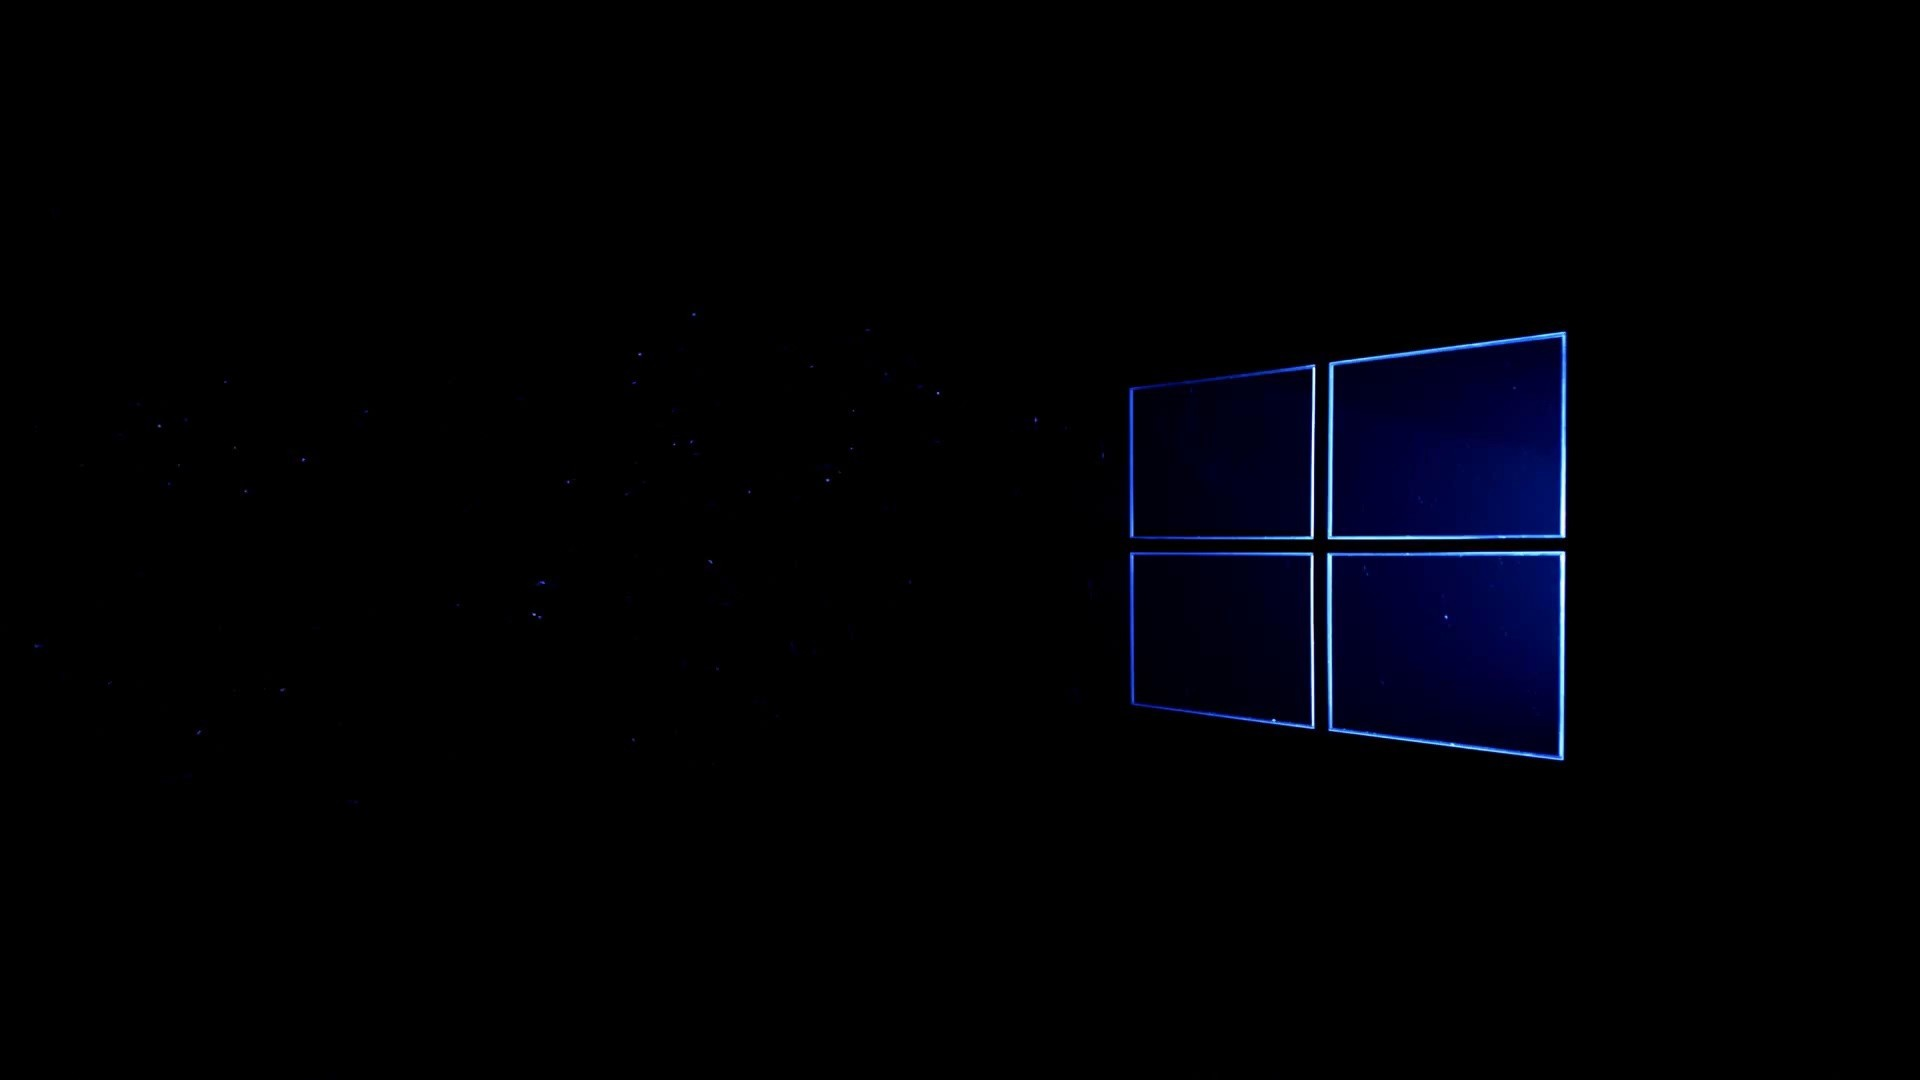 windows wallpaper 1920x1080 ws - photo #30